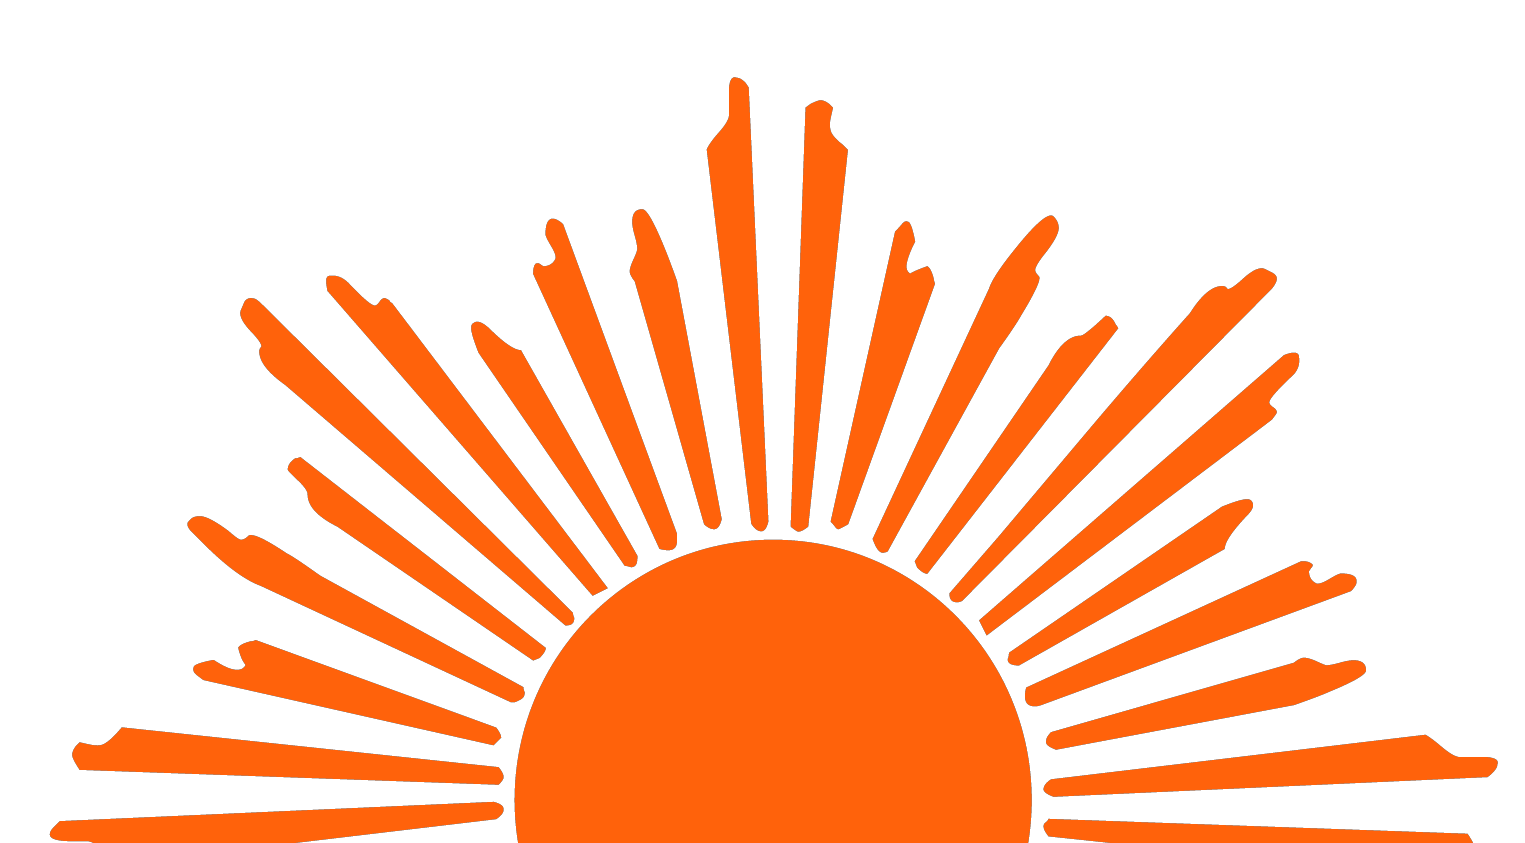 Half Sun With Rays PNG